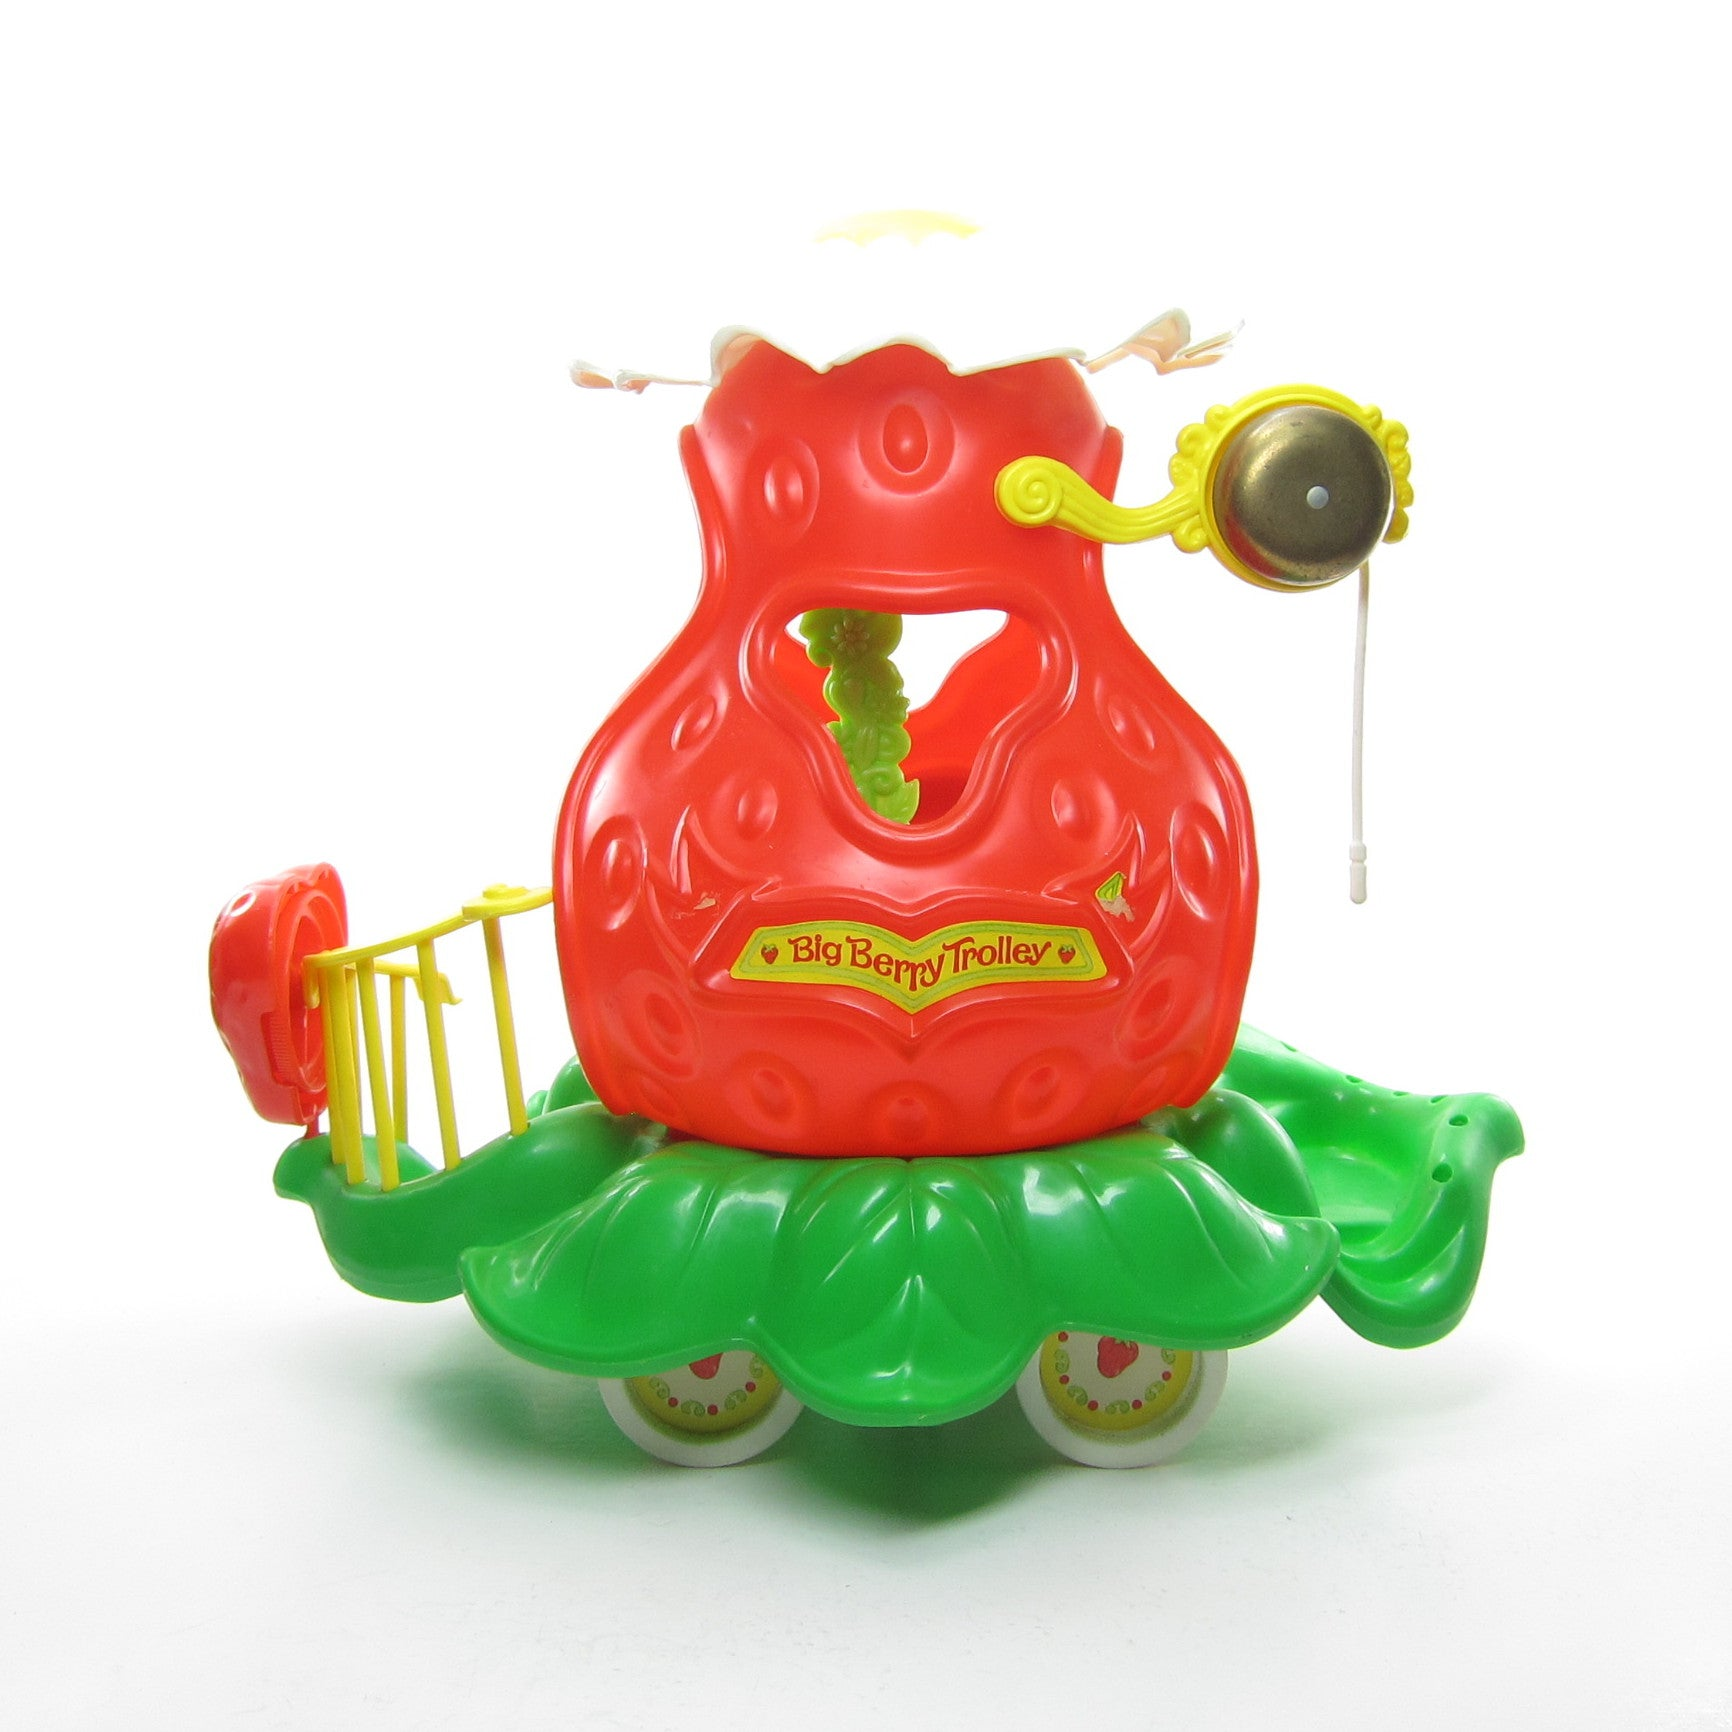 Big Berry Trolley Strawberry Shortcake toy